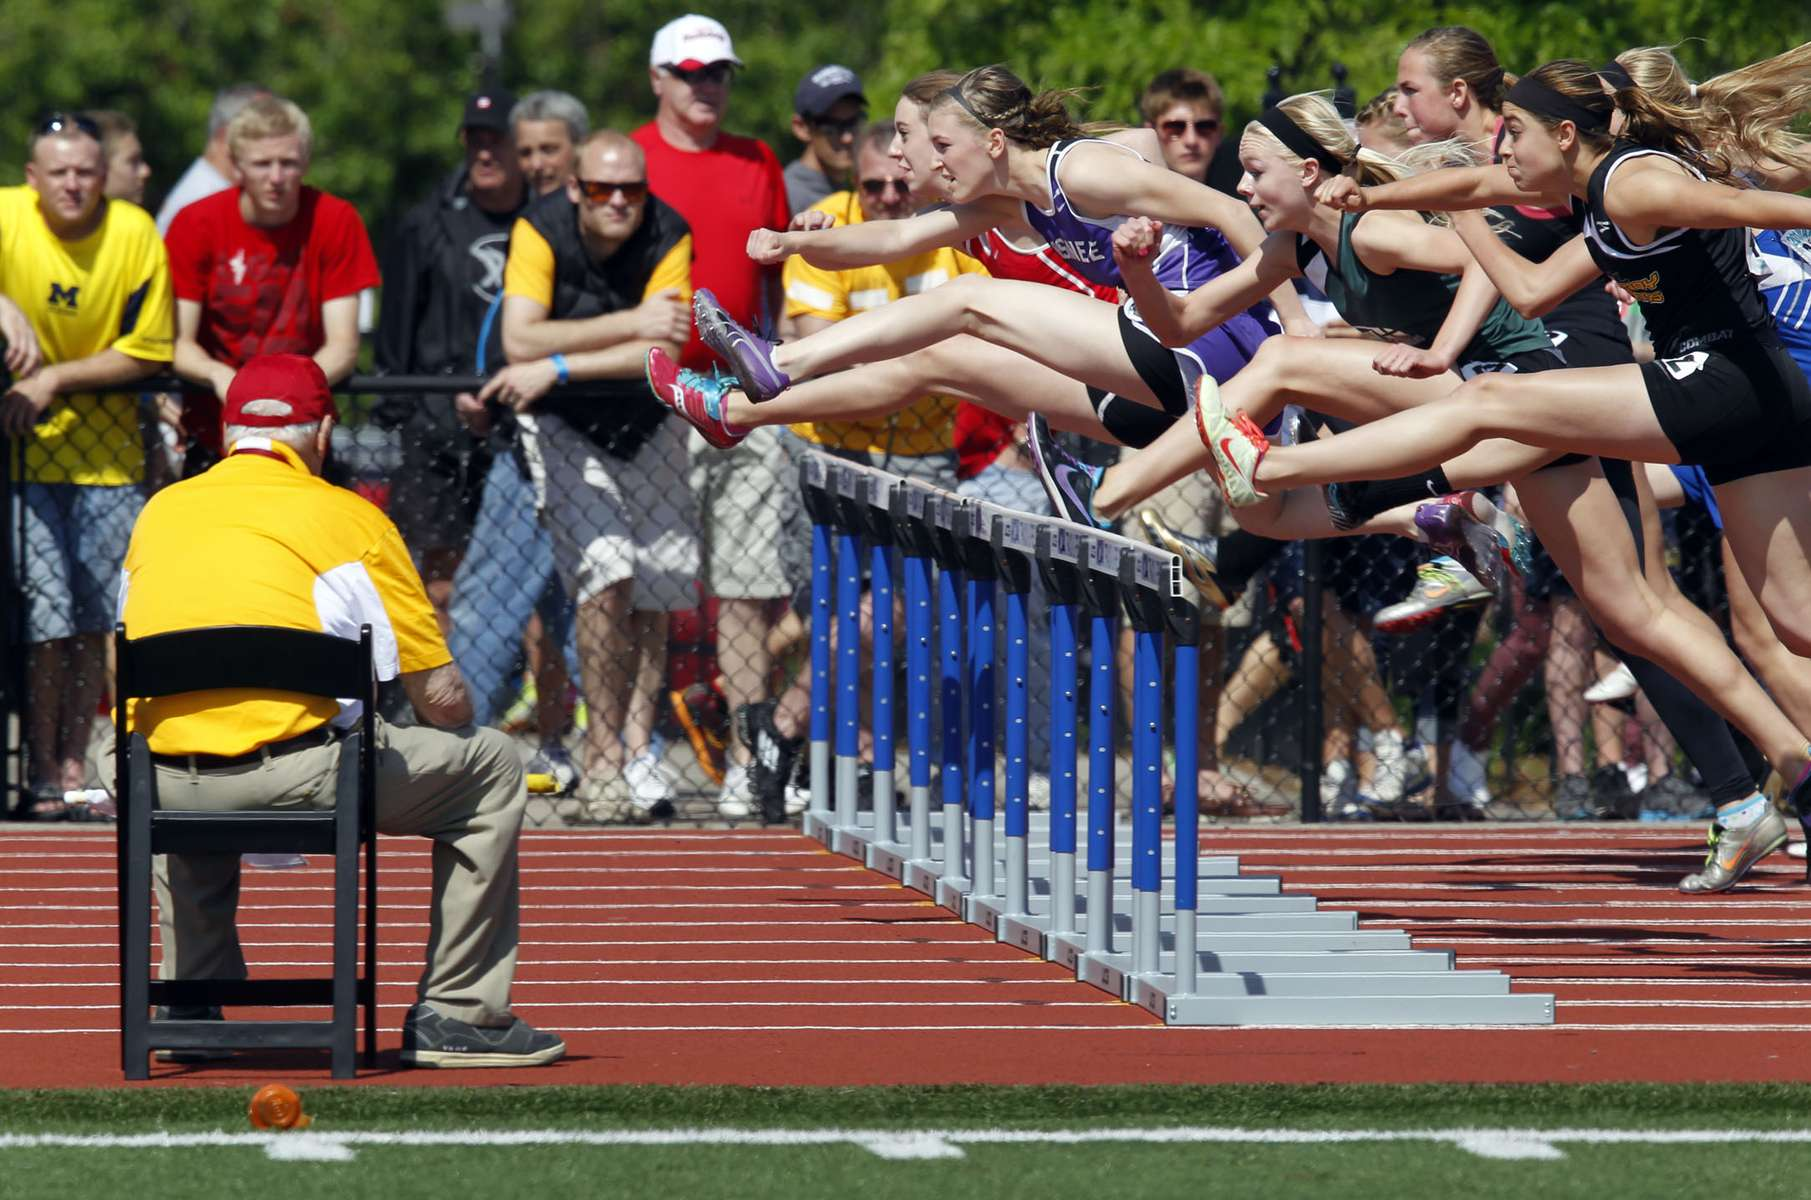 Division 2 girls compete in the second heat of the 100-meter high hurdles at the WIAA 2013 Boys & Girls State Track and Field Division.